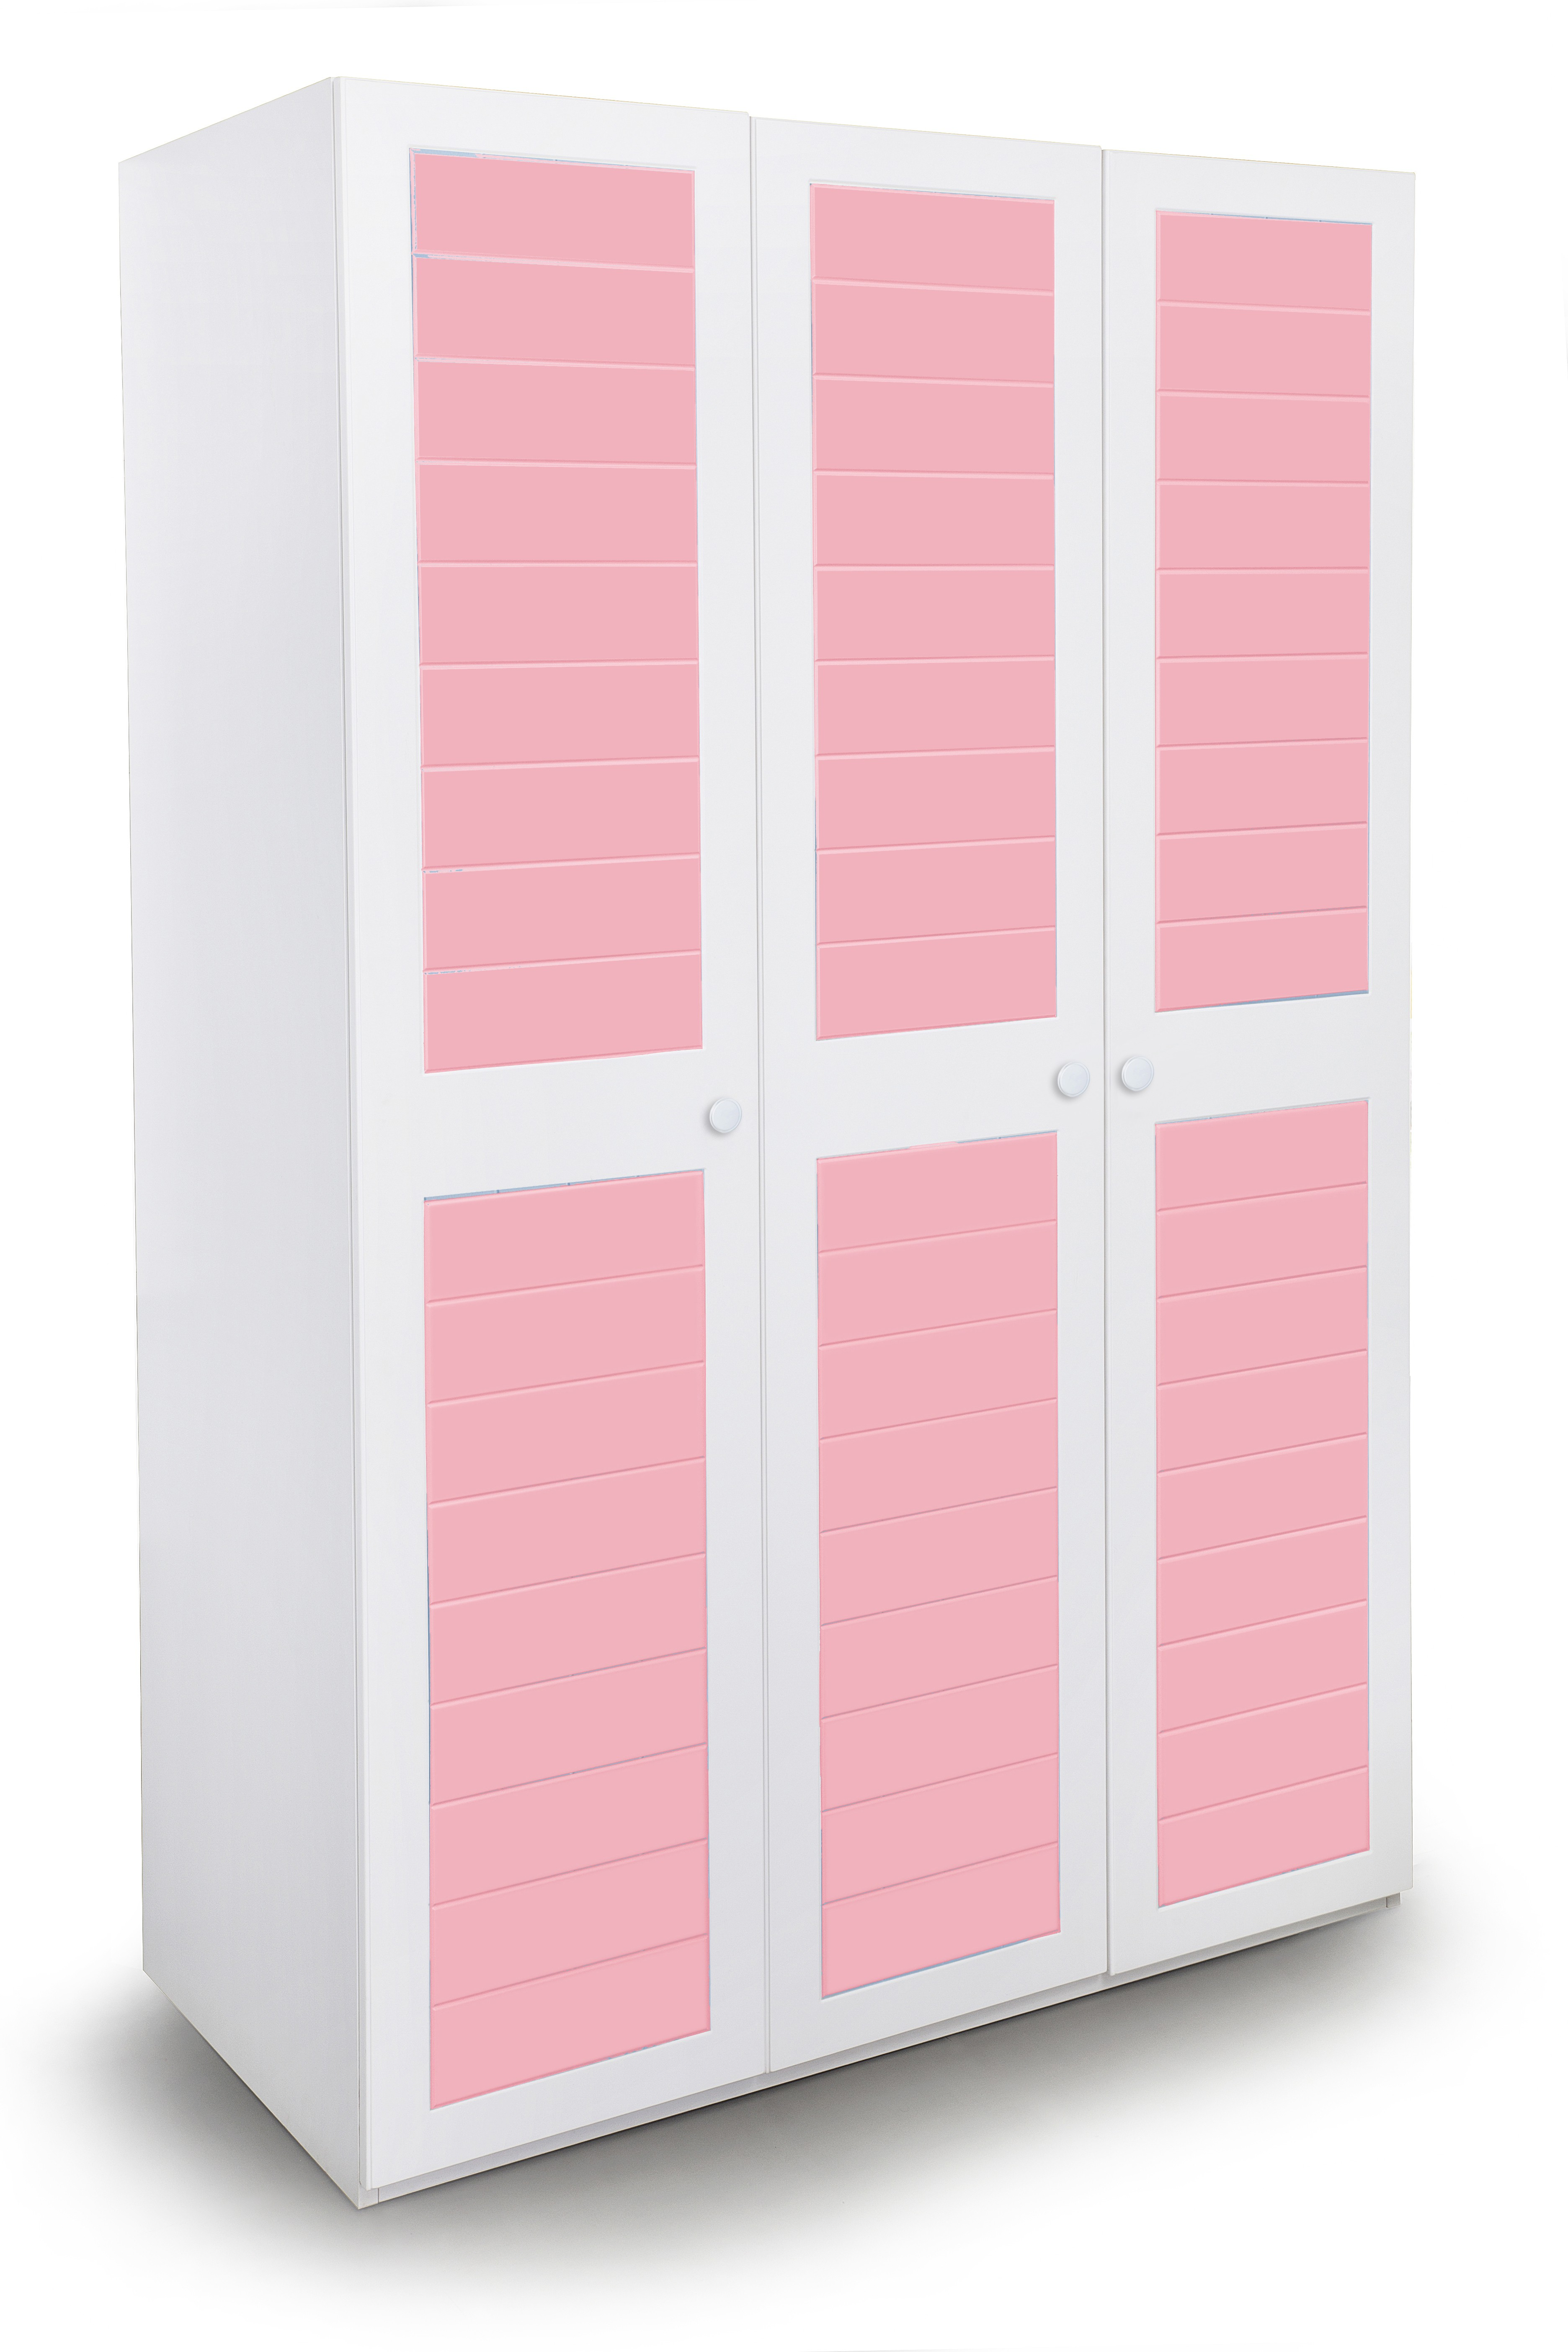 View Alex Daisy French Engineered Wood 3 Door Wardrobe(Finish Color - Pink and White) Price Online(Alex Daisy)